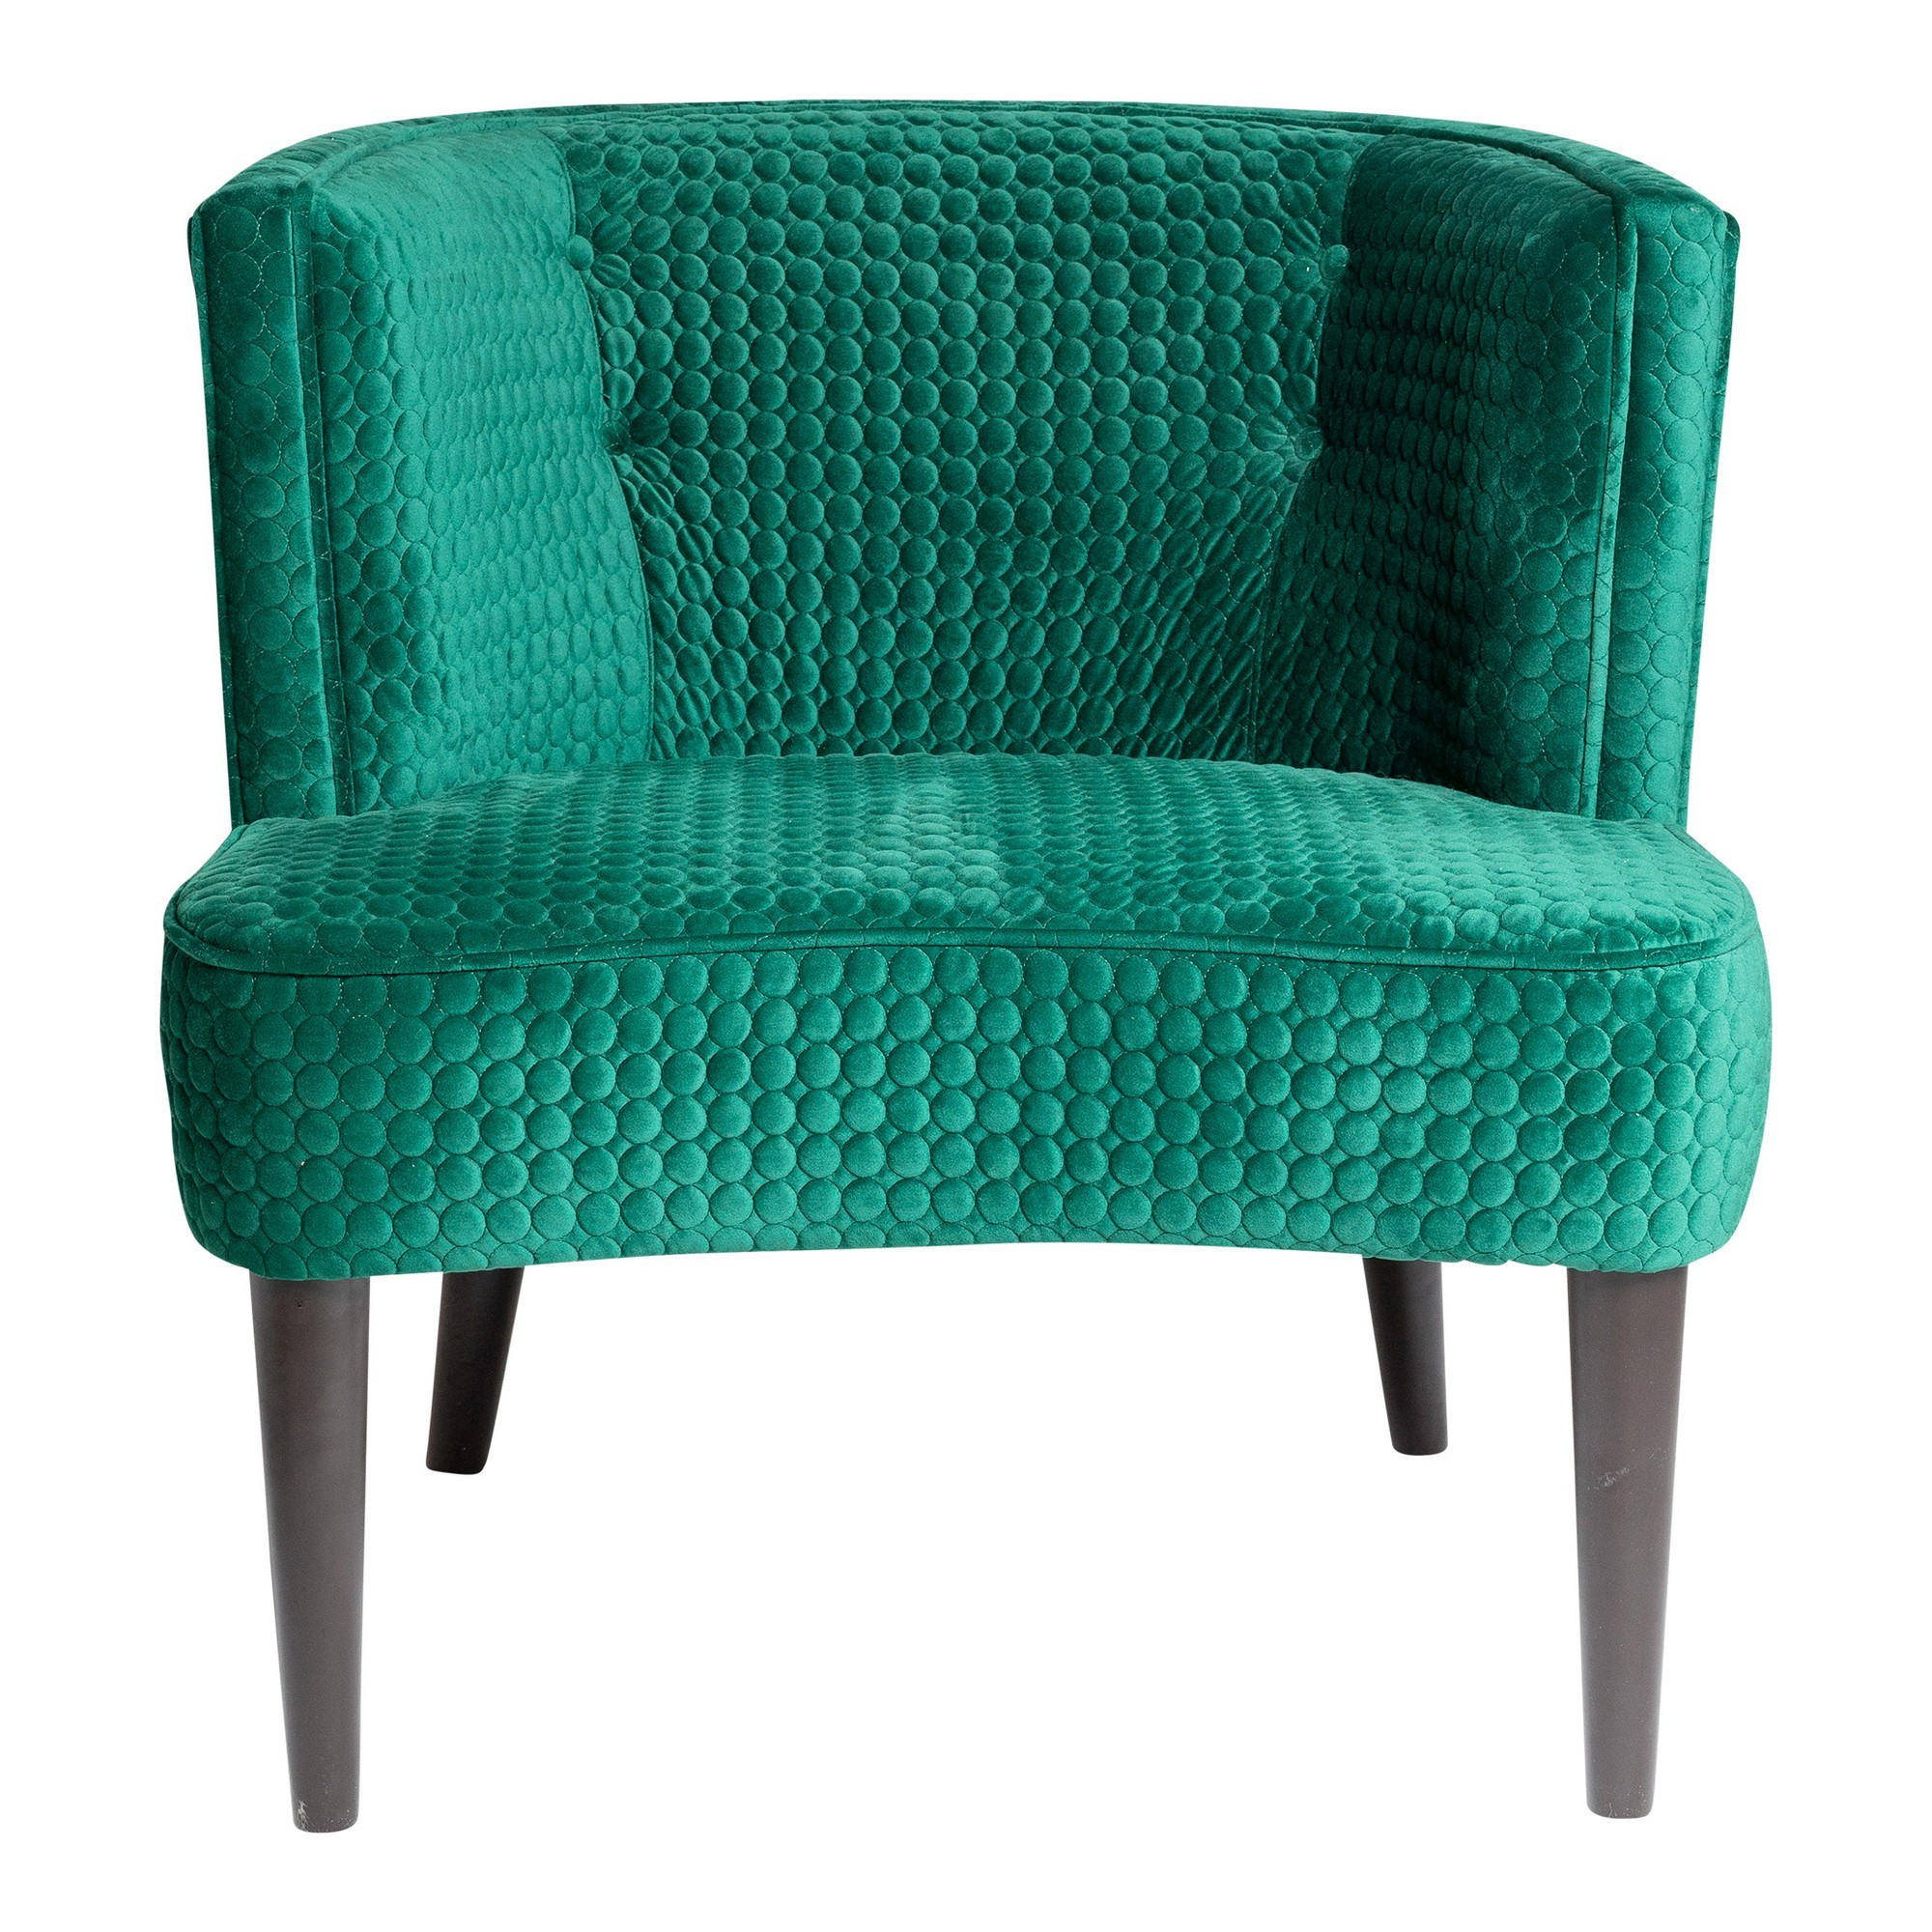 Magellan Quilted Velvet Fabric Lounge Chair, Emerald